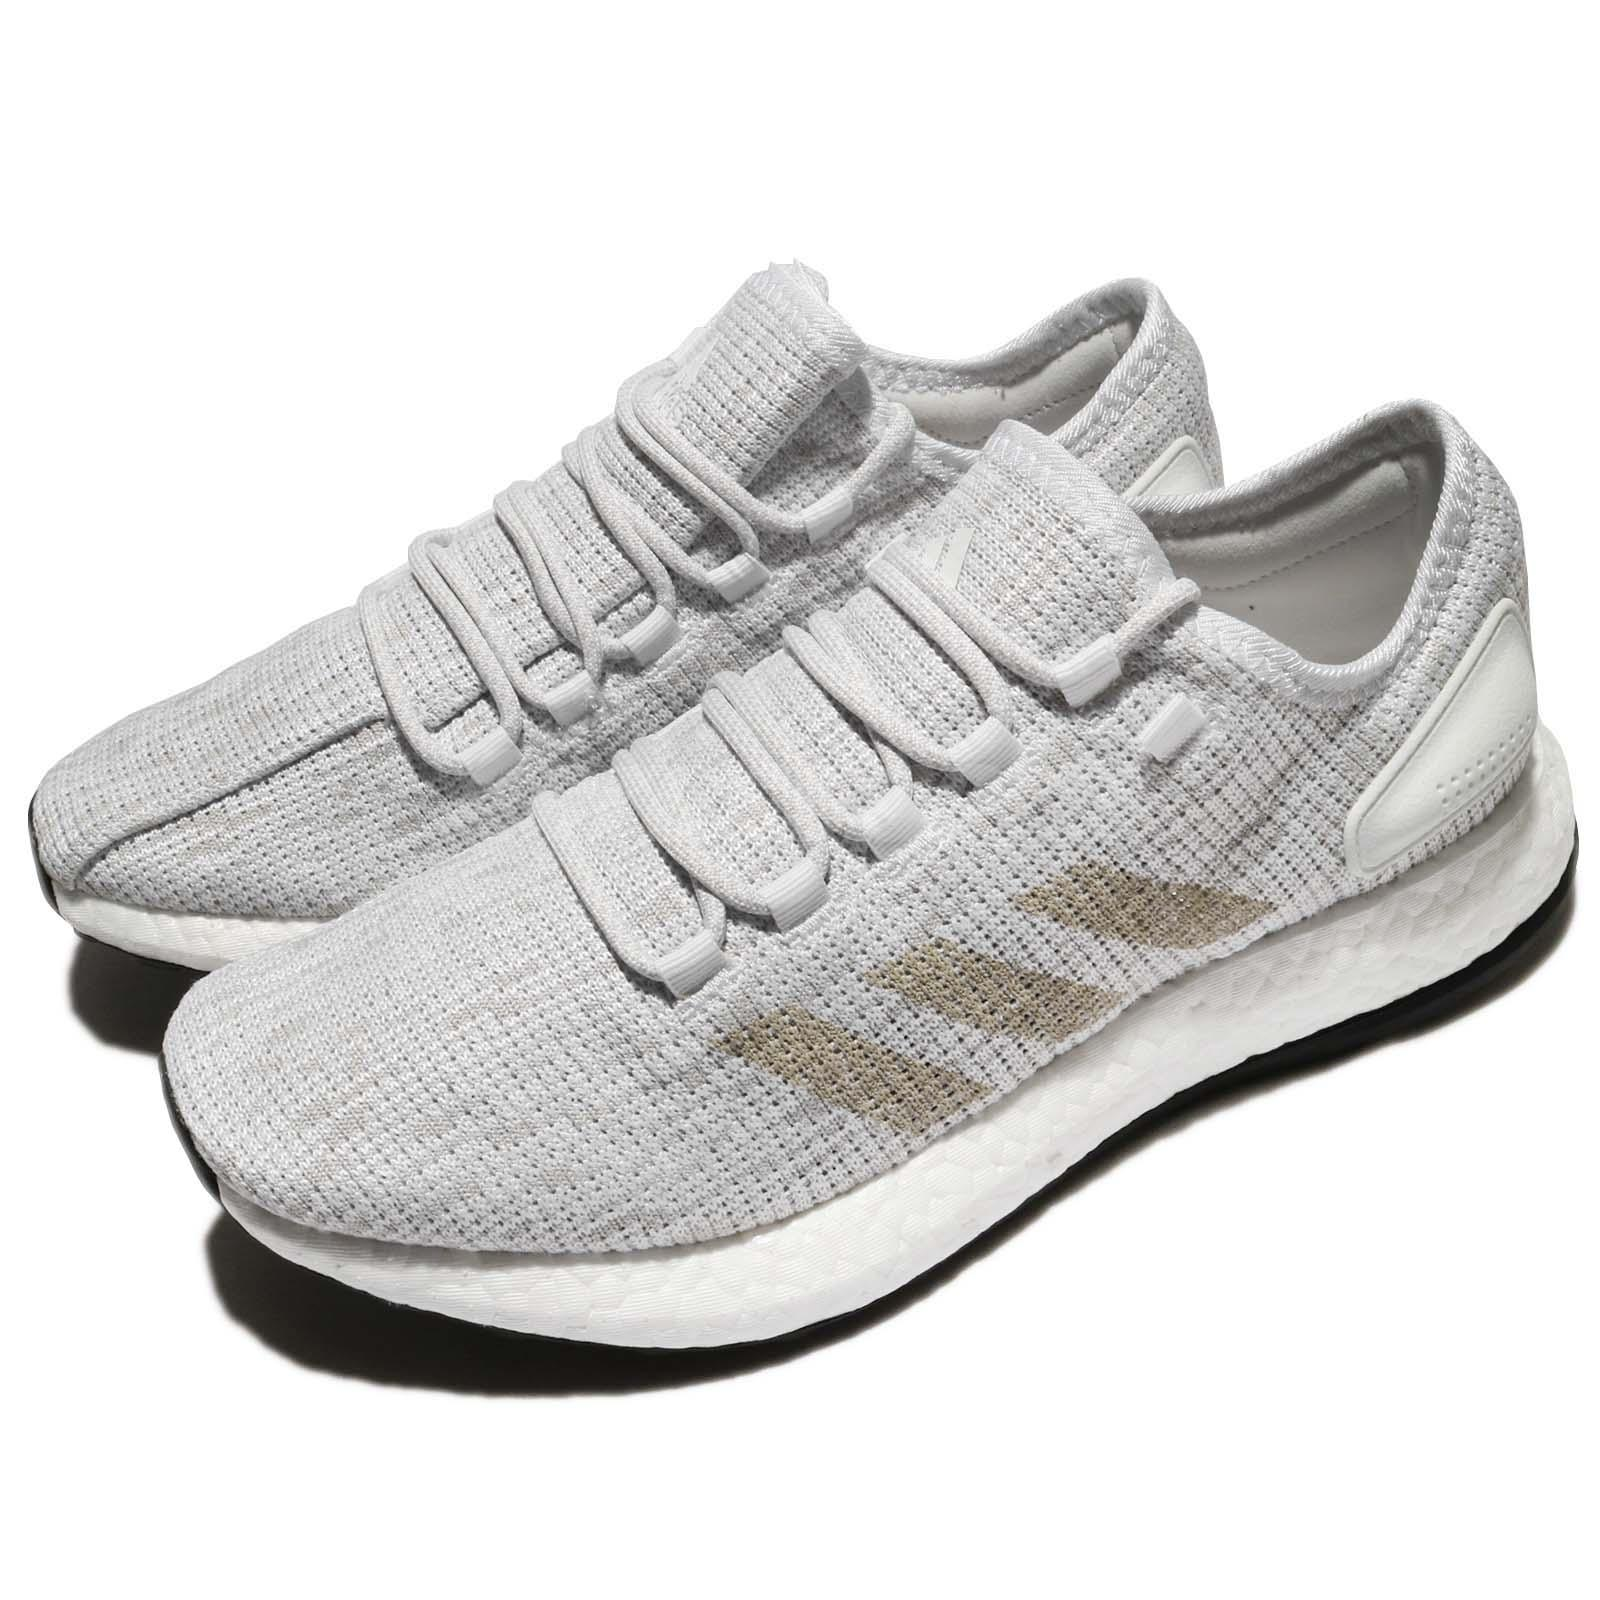 hot sales 8fb7b d62ab Details about adidas PureBOOST White Grey Men Running Shoes Sneakers  Trainers BB6277